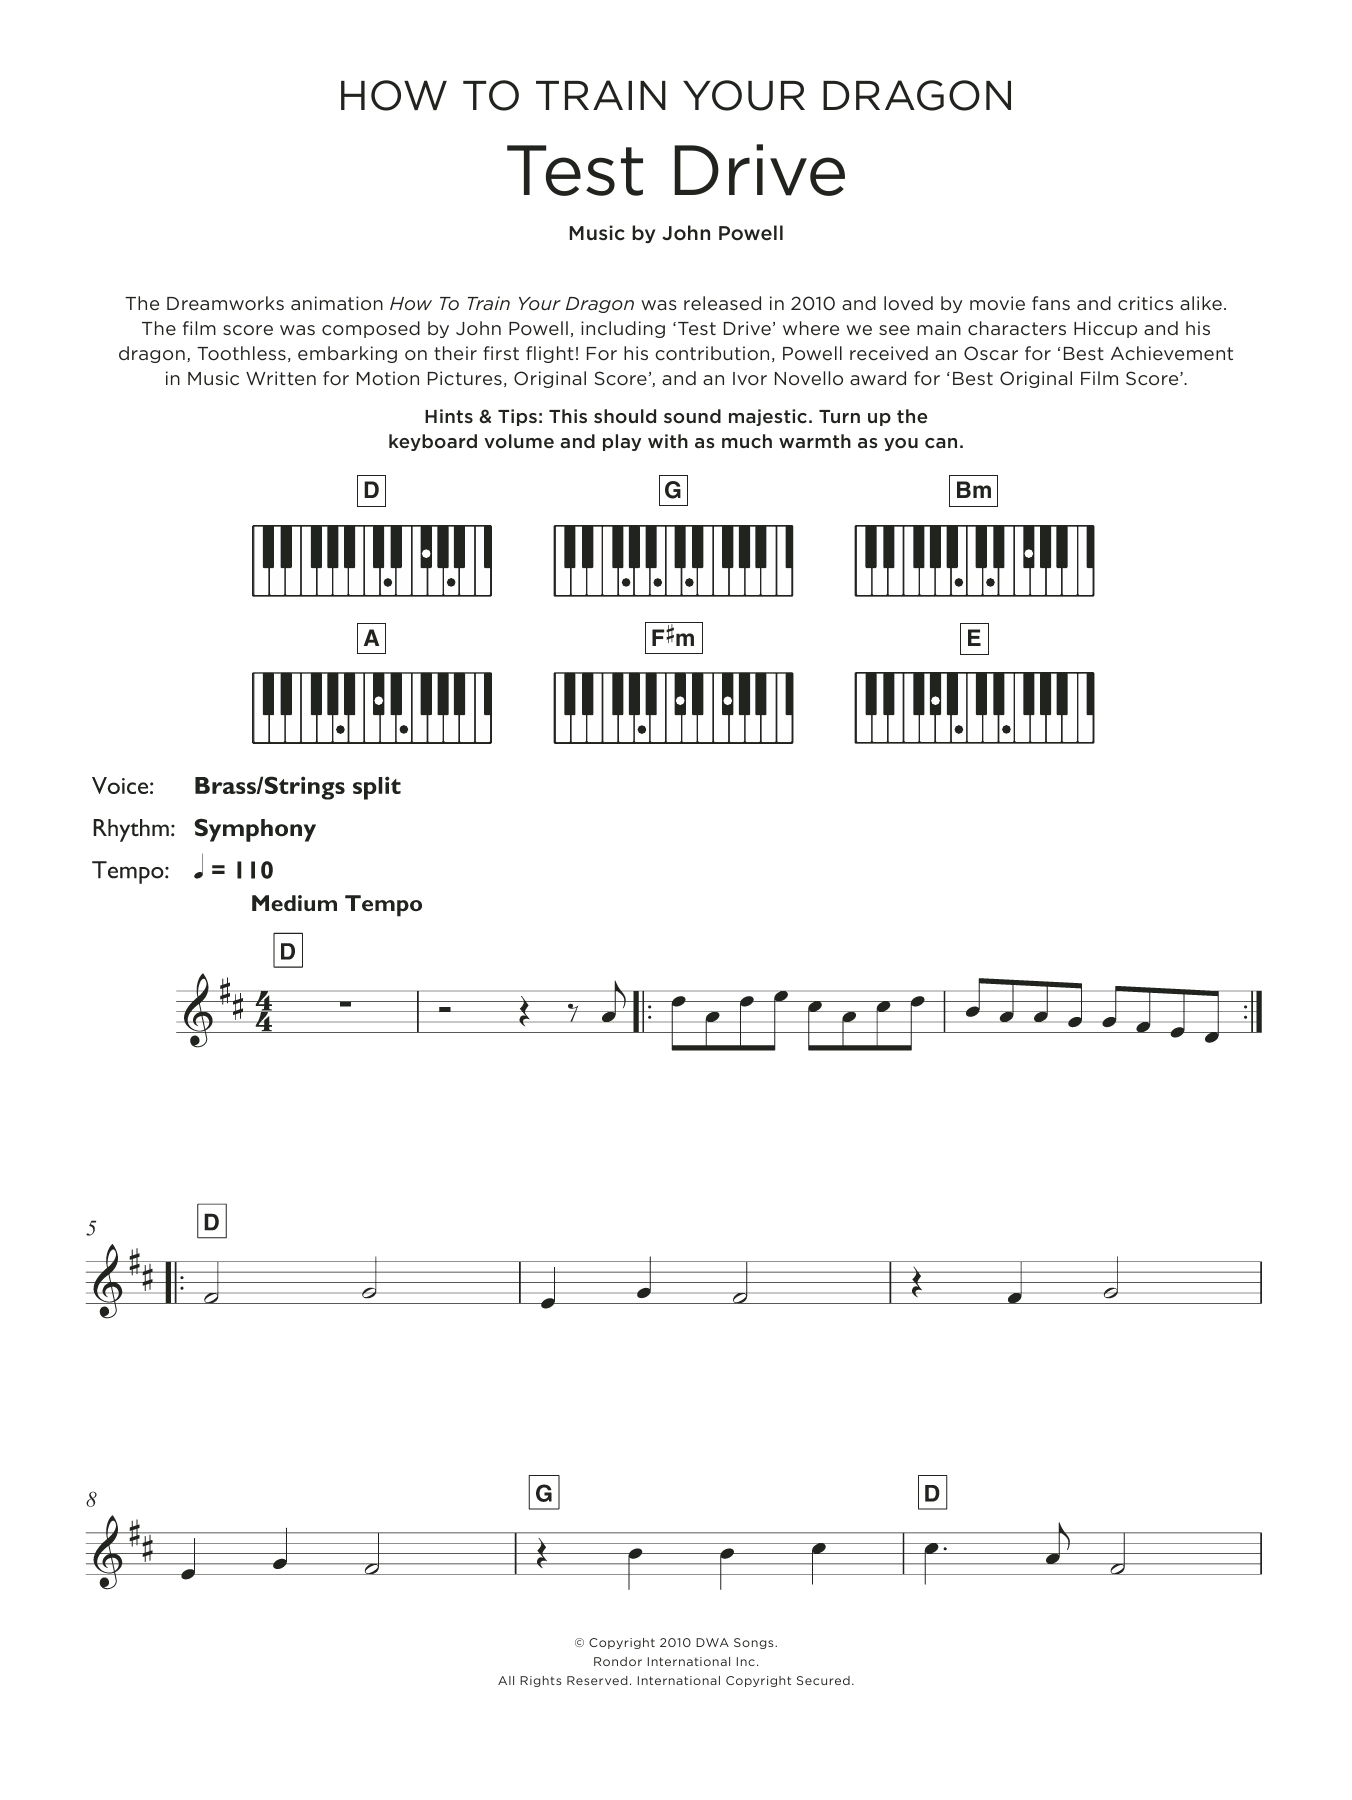 Test Drive (from How to Train Your Dragon) Sheet Music